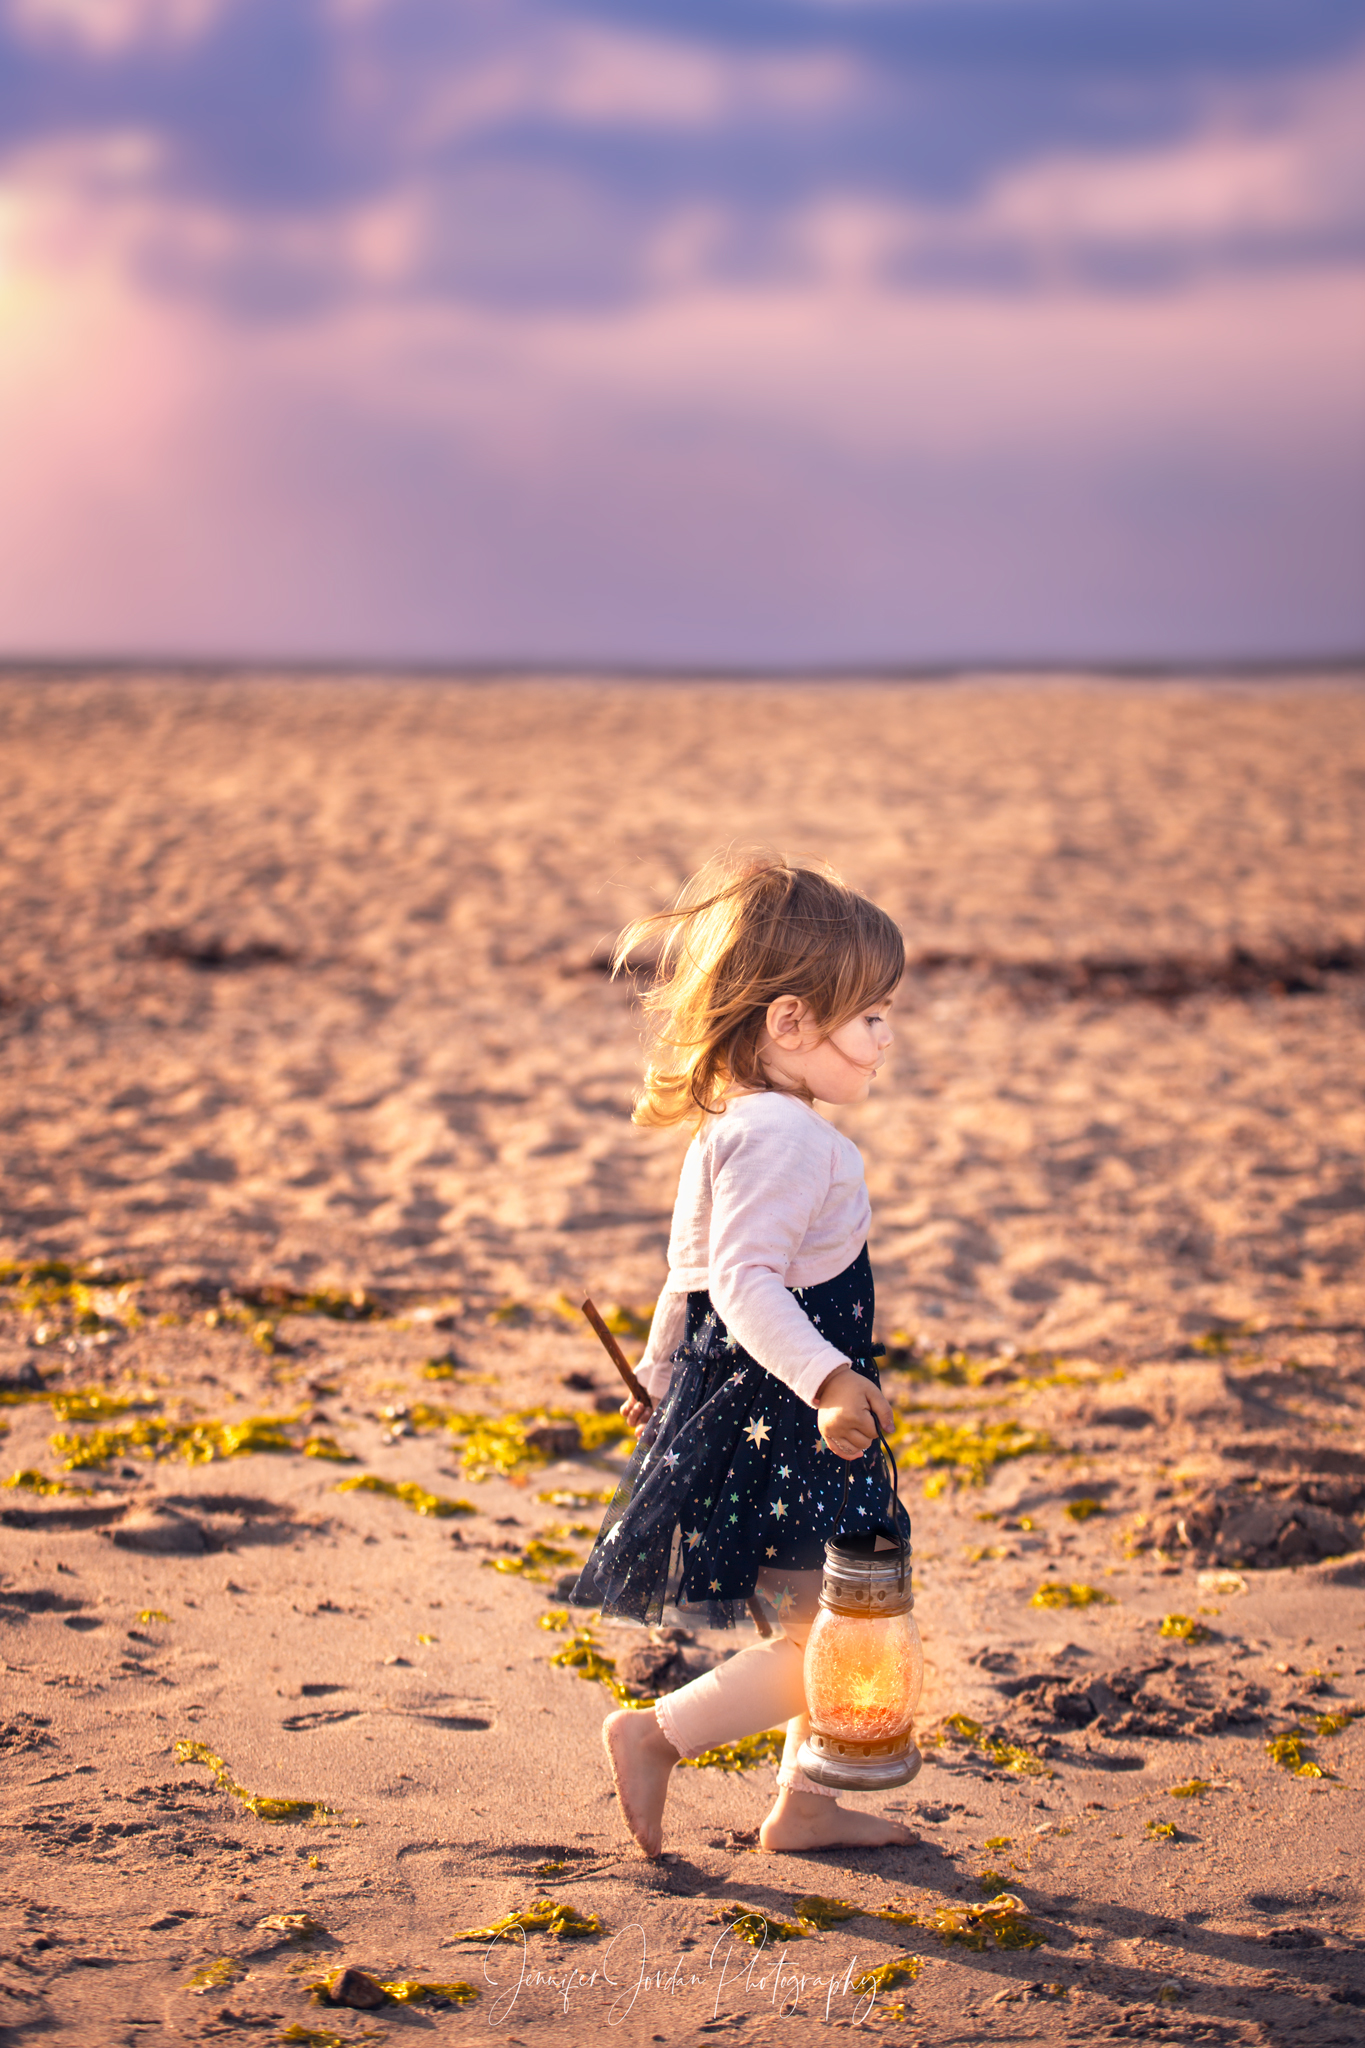 Creative imagery by Jennifer Jordan Photography. A little girl stands on the beach with a lion